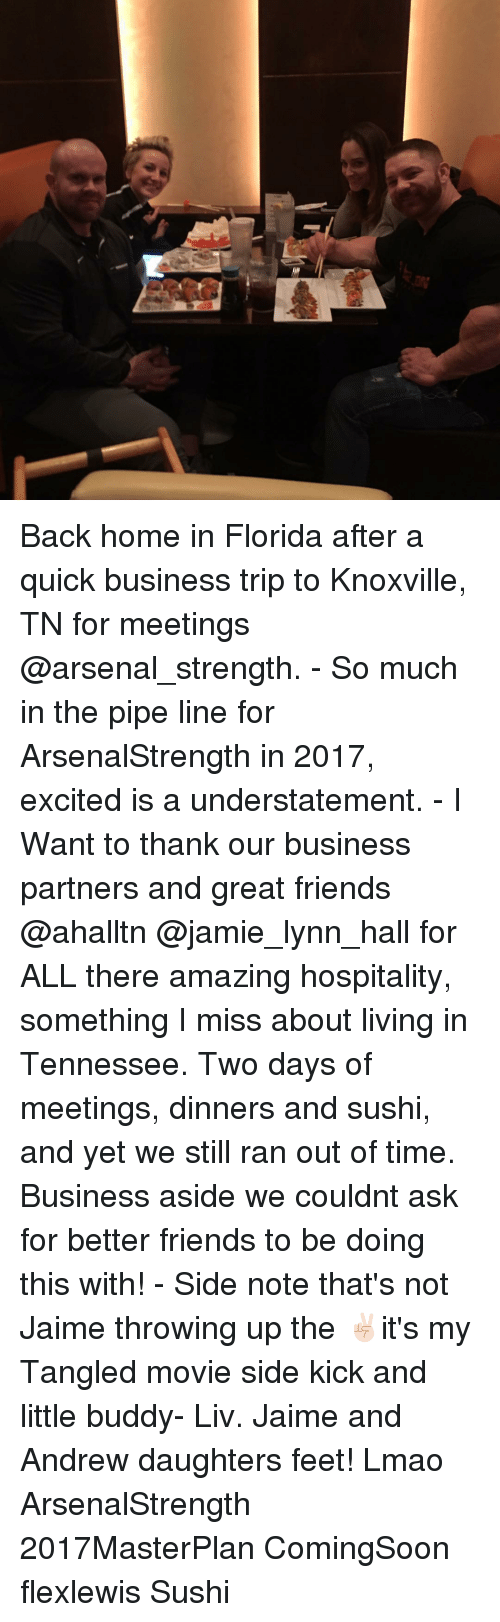 Arsenal, Memes, and Excite: Back home in Florida after a quick business trip to Knoxville, TN for meetings @arsenal_strength. - So much in the pipe line for ArsenalStrength in 2017, excited is a understatement. - I Want to thank our business partners and great friends @ahalltn @jamie_lynn_hall for ALL there amazing hospitality, something I miss about living in Tennessee. Two days of meetings, dinners and sushi, and yet we still ran out of time. Business aside we couldnt ask for better friends to be doing this with! - Side note that's not Jaime throwing up the ✌🏻it's my Tangled movie side kick and little buddy- Liv. Jaime and Andrew daughters feet! Lmao ArsenalStrength 2017MasterPlan ComingSoon flexlewis Sushi